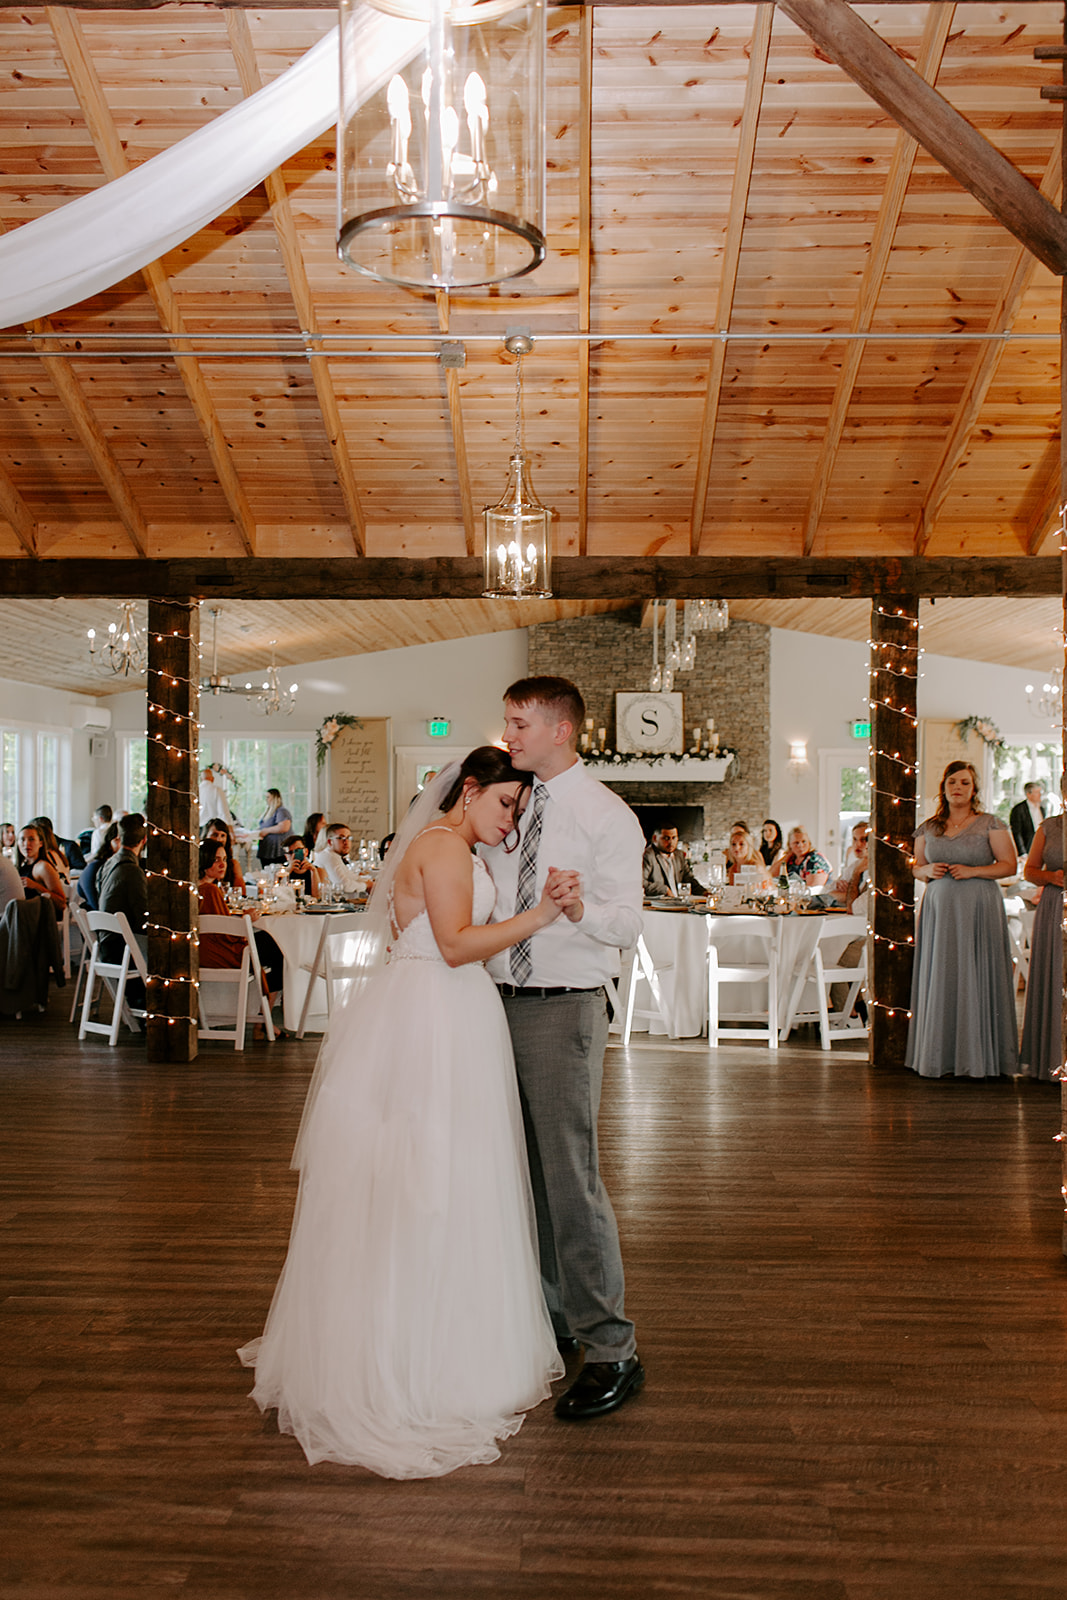 Kendra_and_Mattew_Indiana_Wedding_by_Emily_Wehner-804.jpg